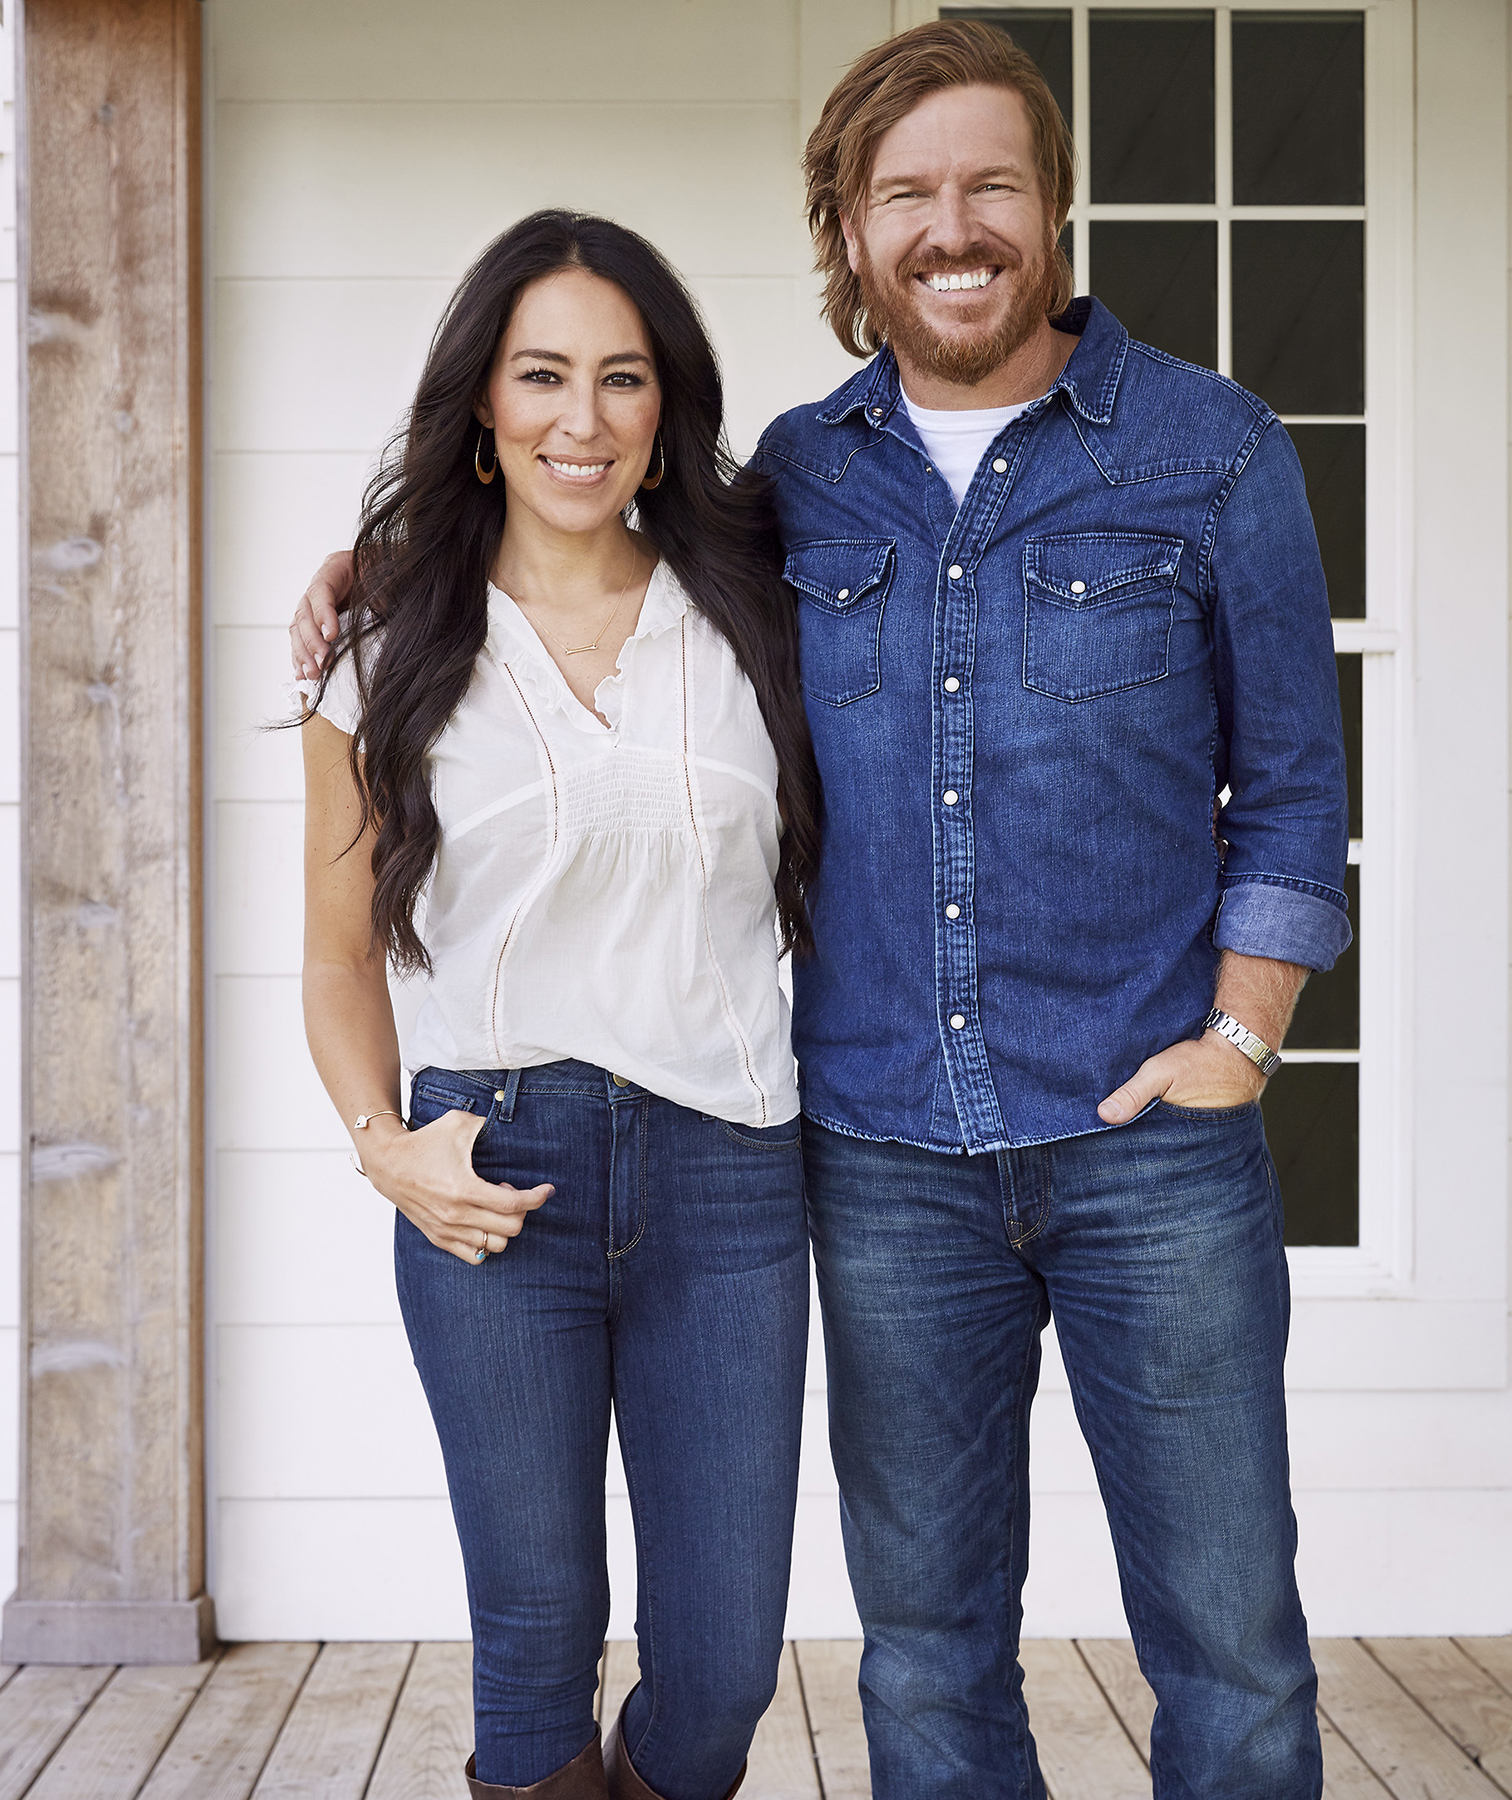 Chip and Joanna Gaines Hearth & Hand portrait